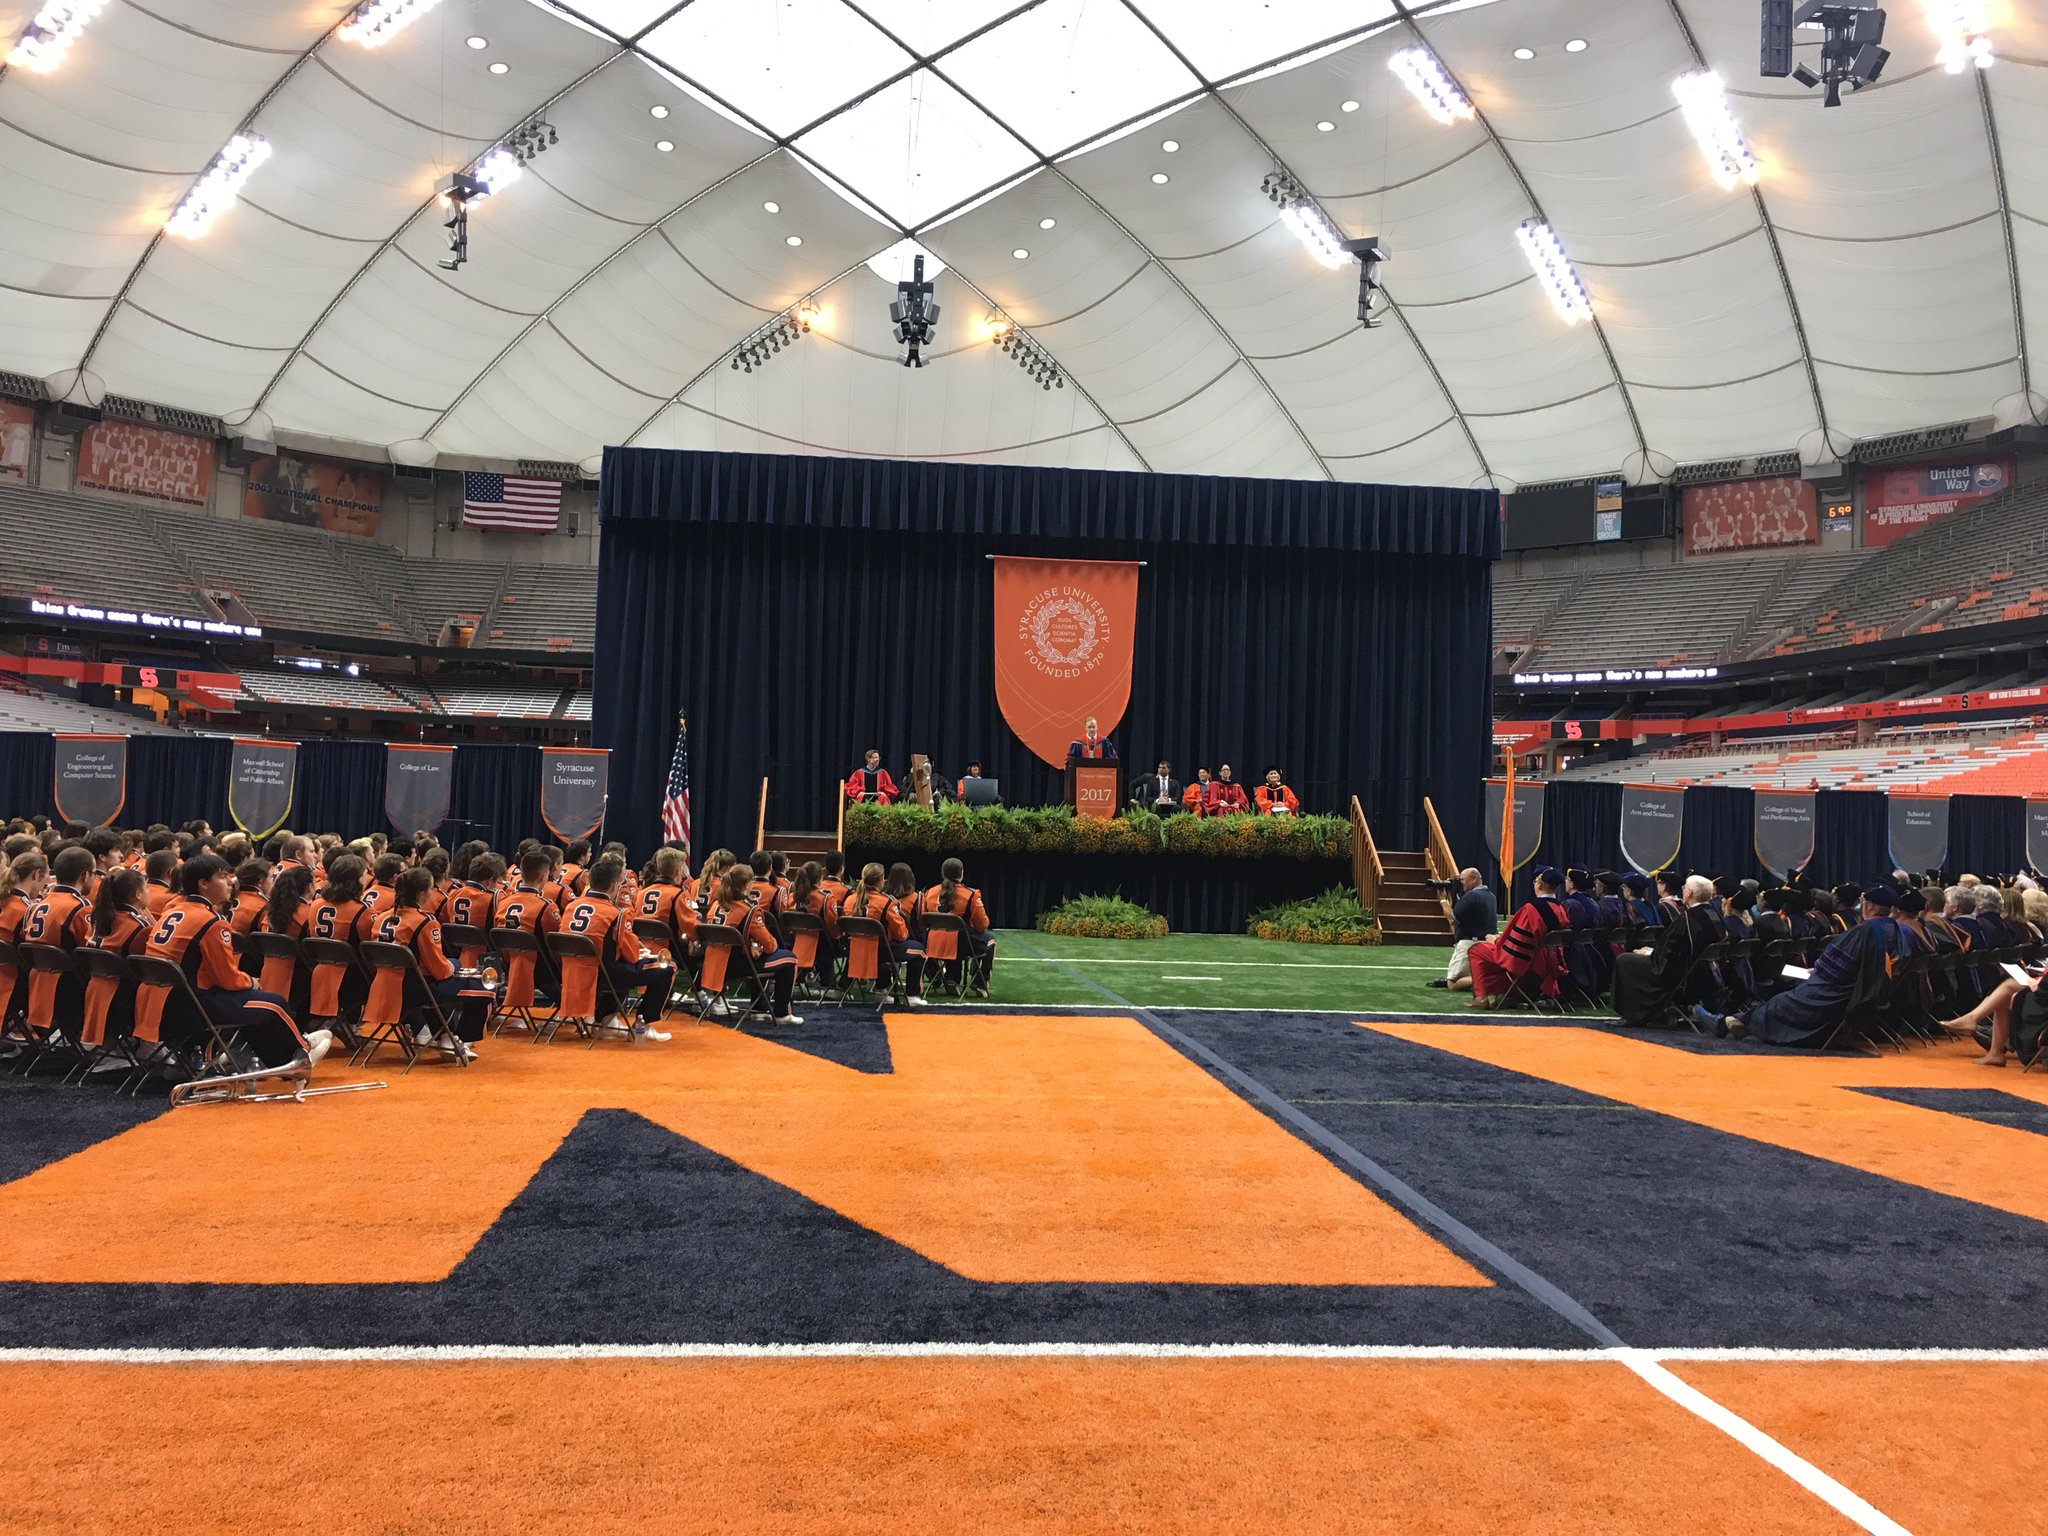 Chancellor Syverud welcomes new students to #SyracuseU! #SUWelcome 🍊 https://t.co/W0fXvotWRs